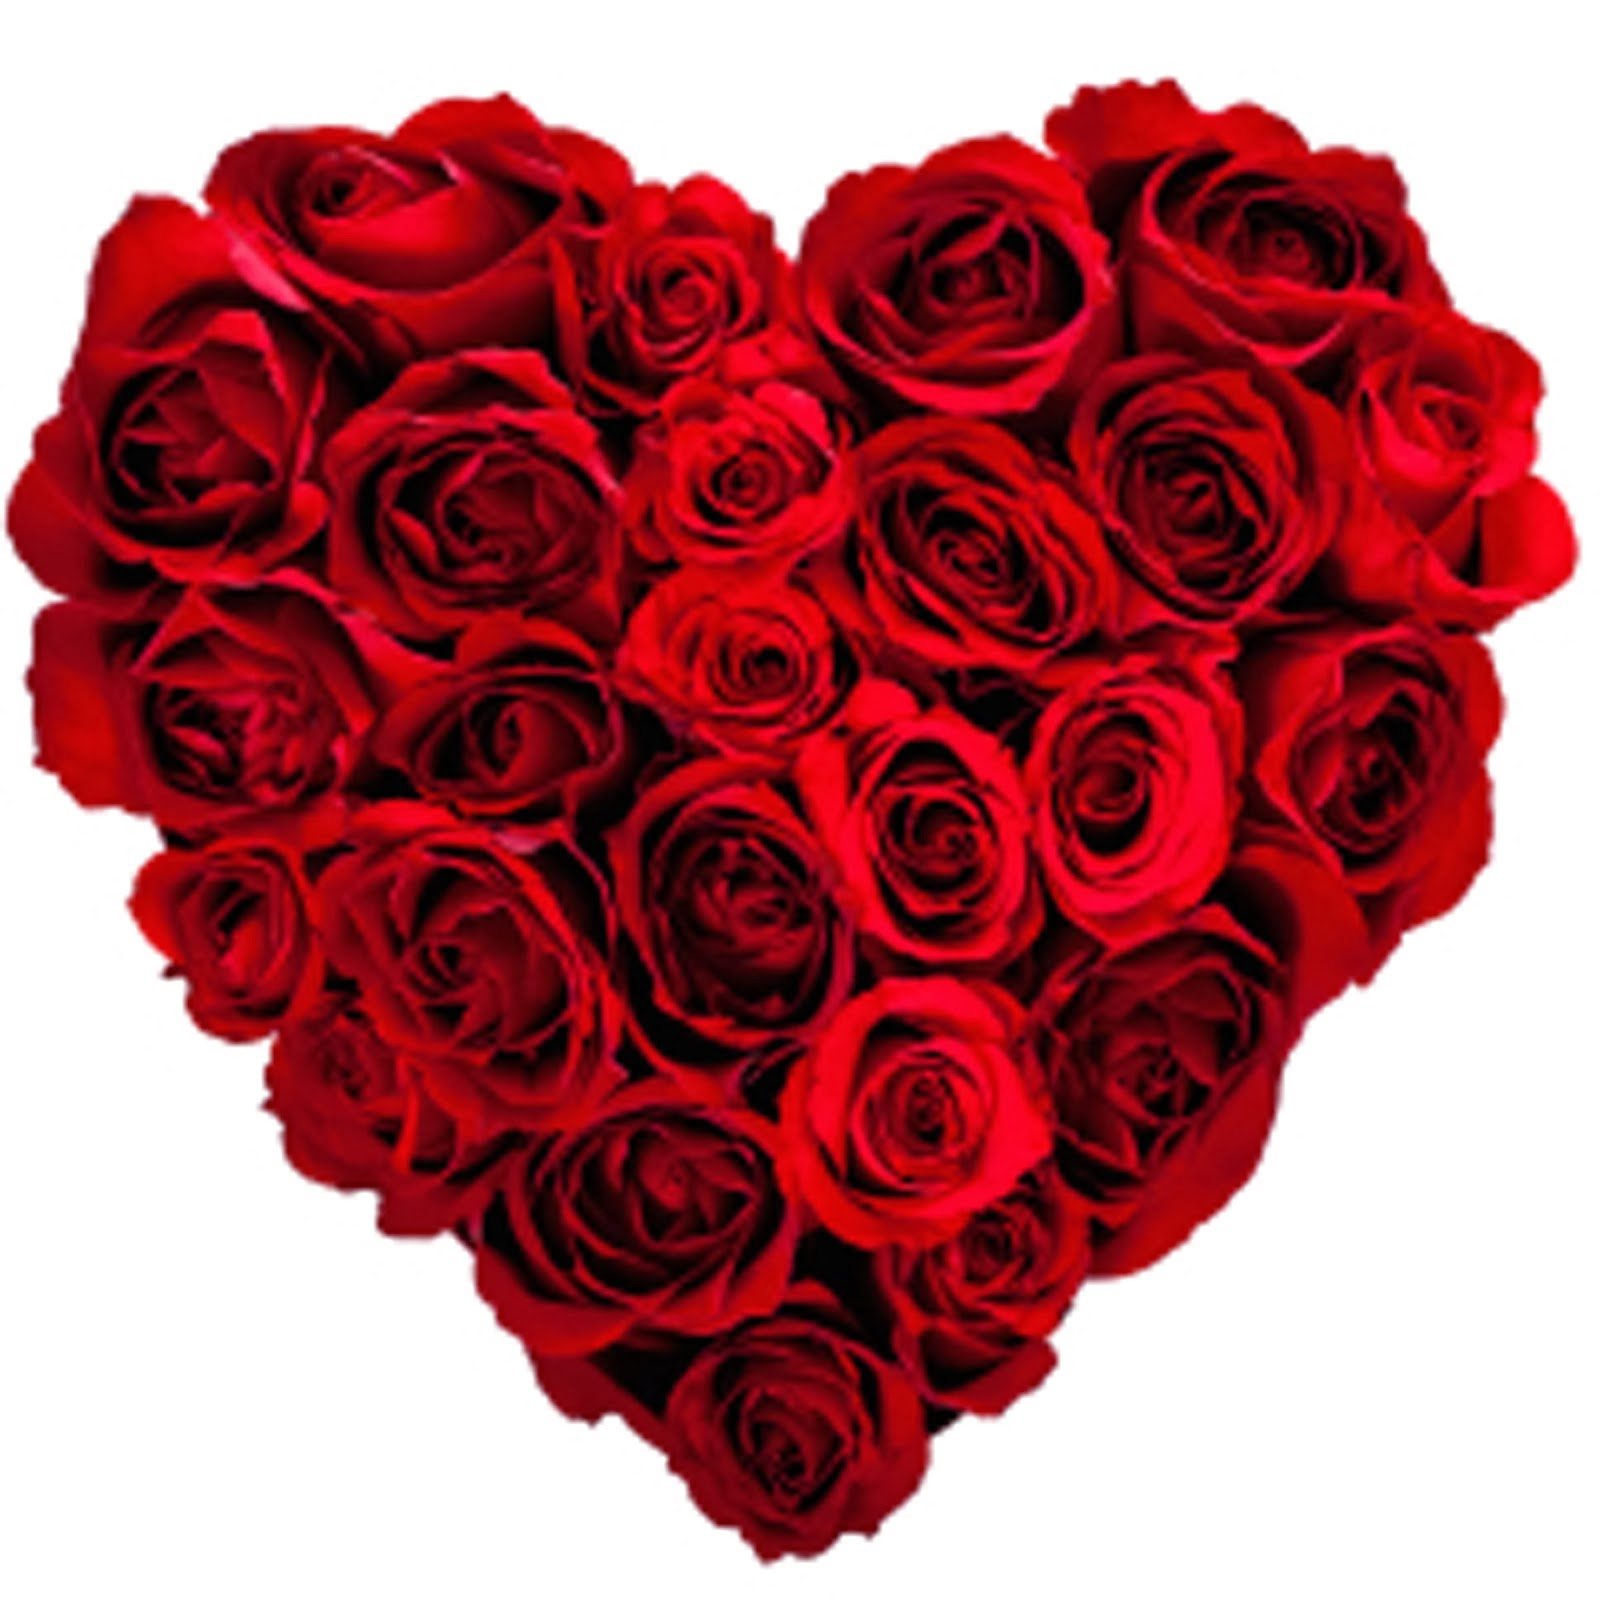 heart n love valentines day hd wallpapers 2013 full hd photo i event picture valentine day love wallpaper